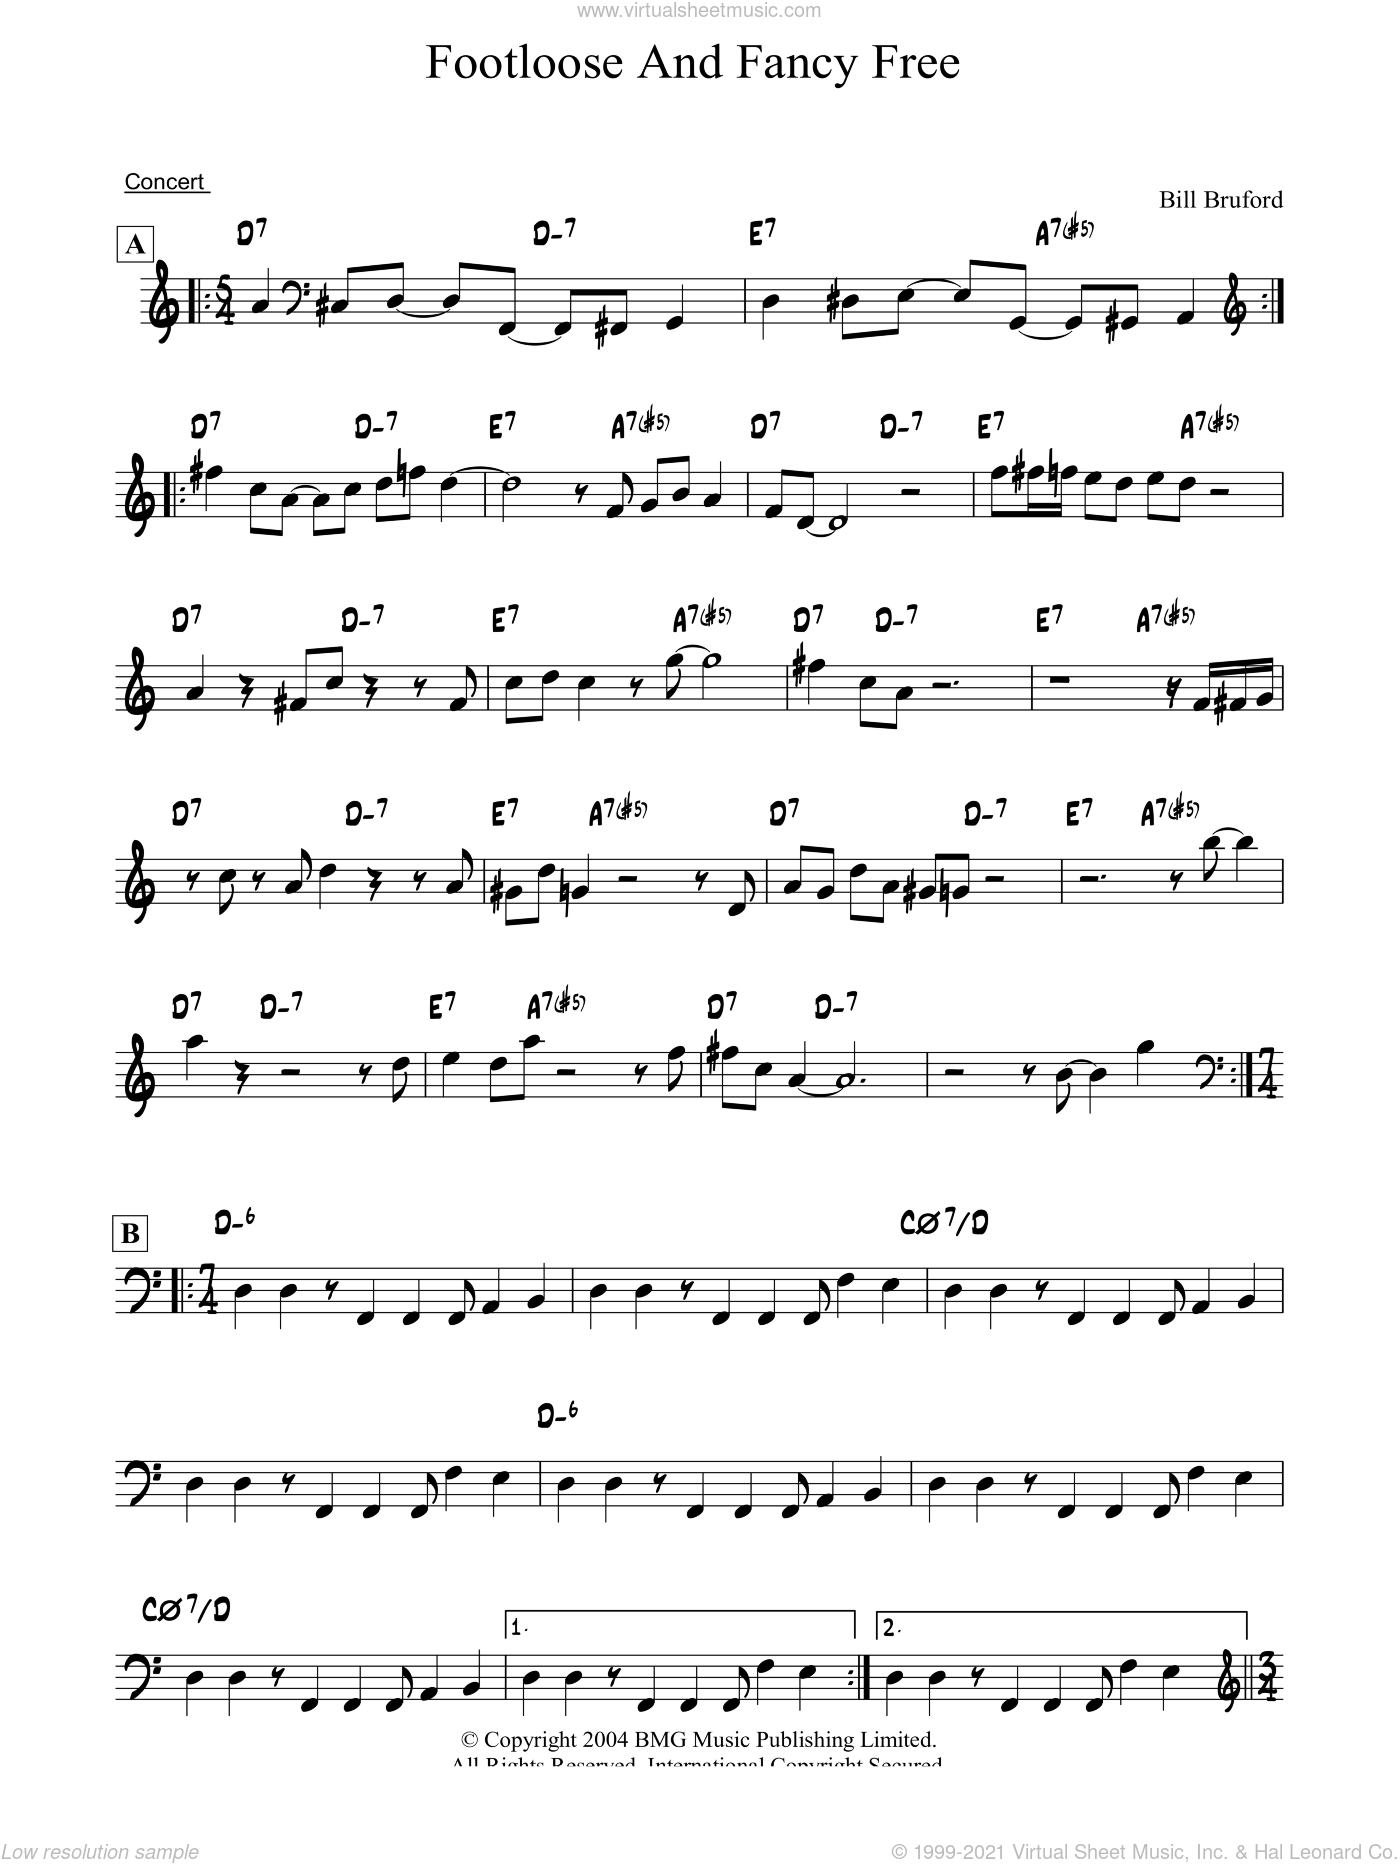 Footloose And Fancy Free sheet music for piano solo by Bill Bruford. Score Image Preview.